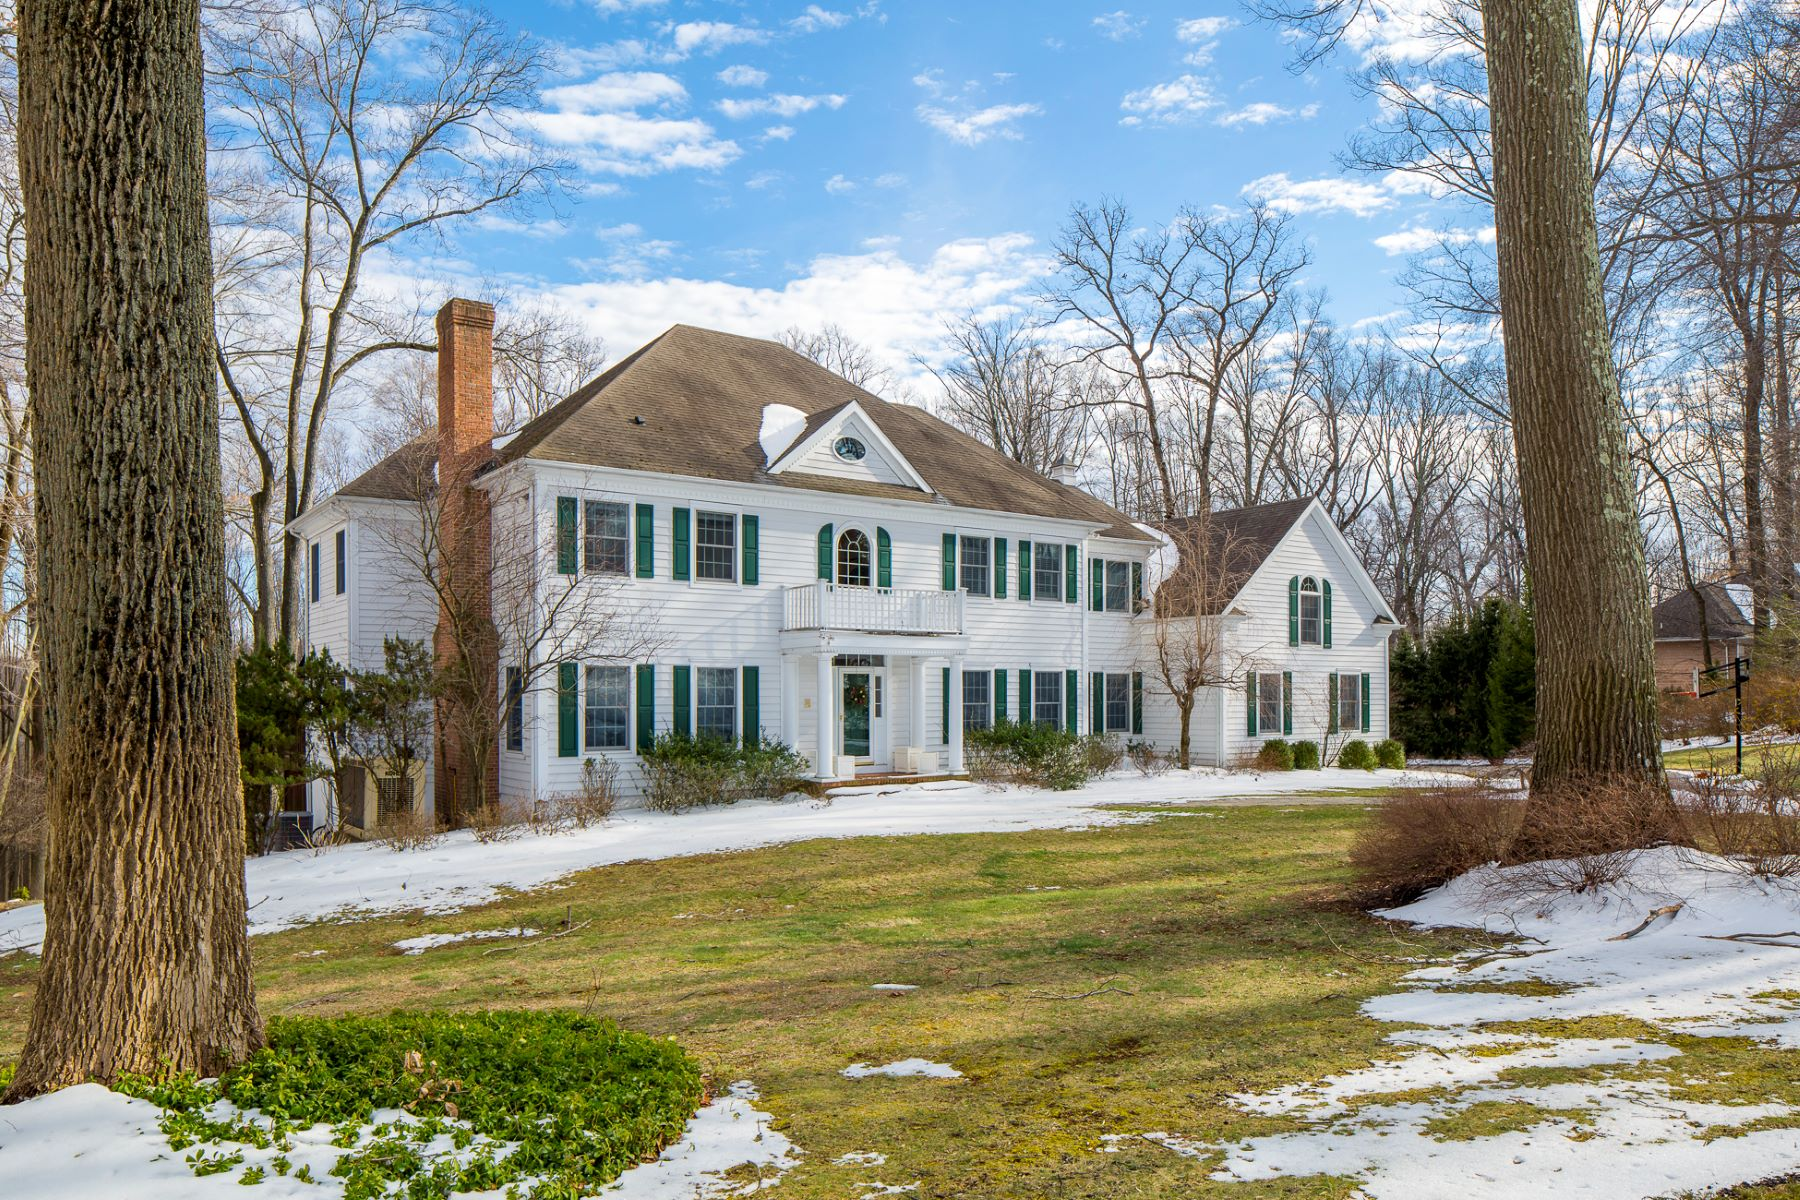 Single Family Home for Sale at This High-End Home Checks Every Box - Hopewell Township 19 Harbourton Ridge Drive Pennington, 08534 United States